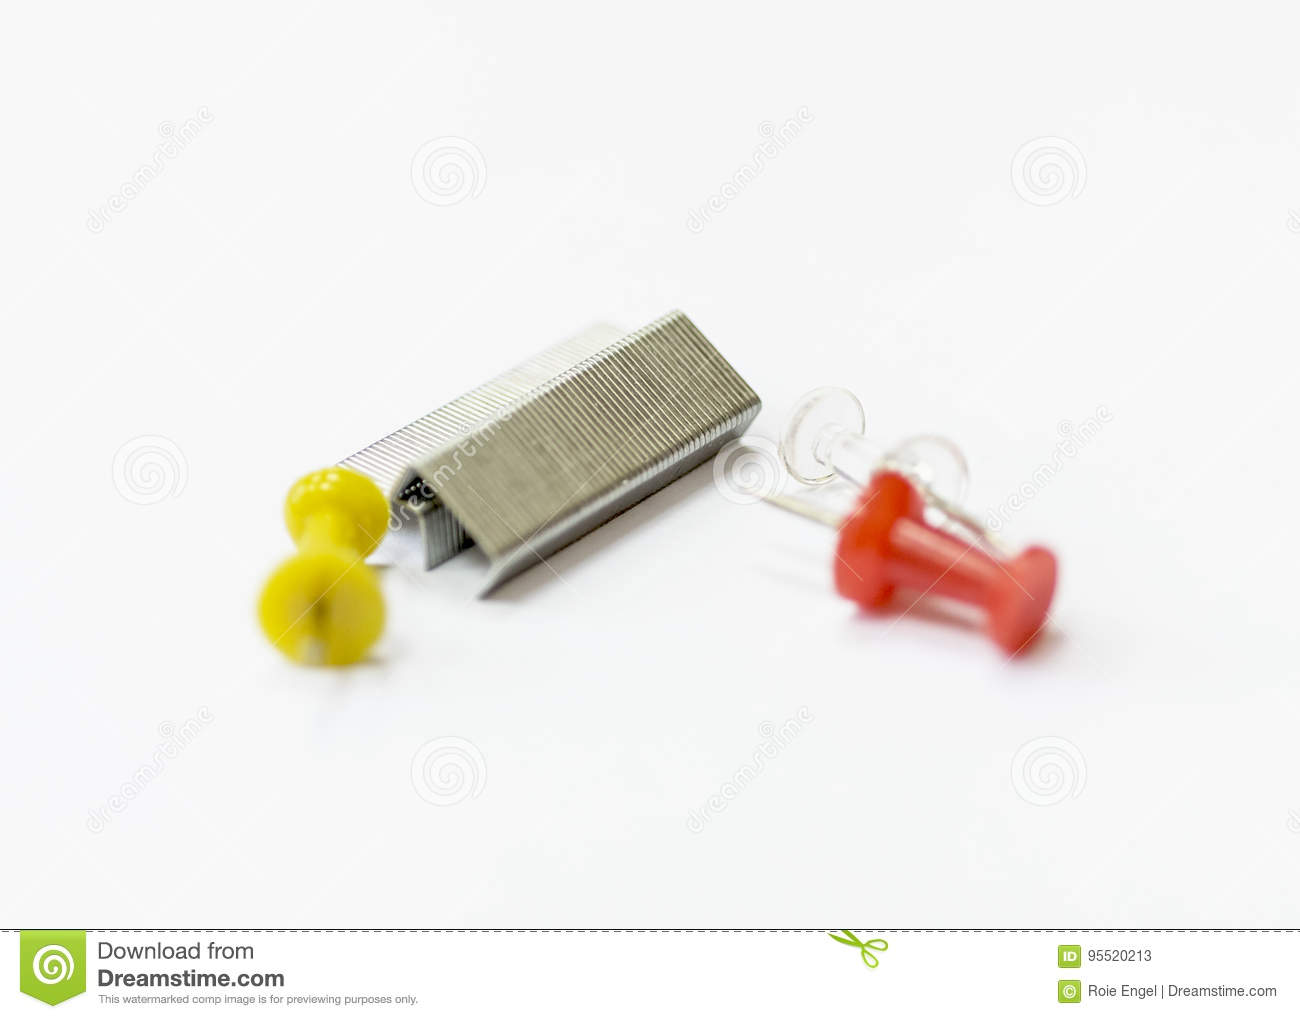 b166d54dce87 Staples and pushpins stock illustration. Illustration of staple ...